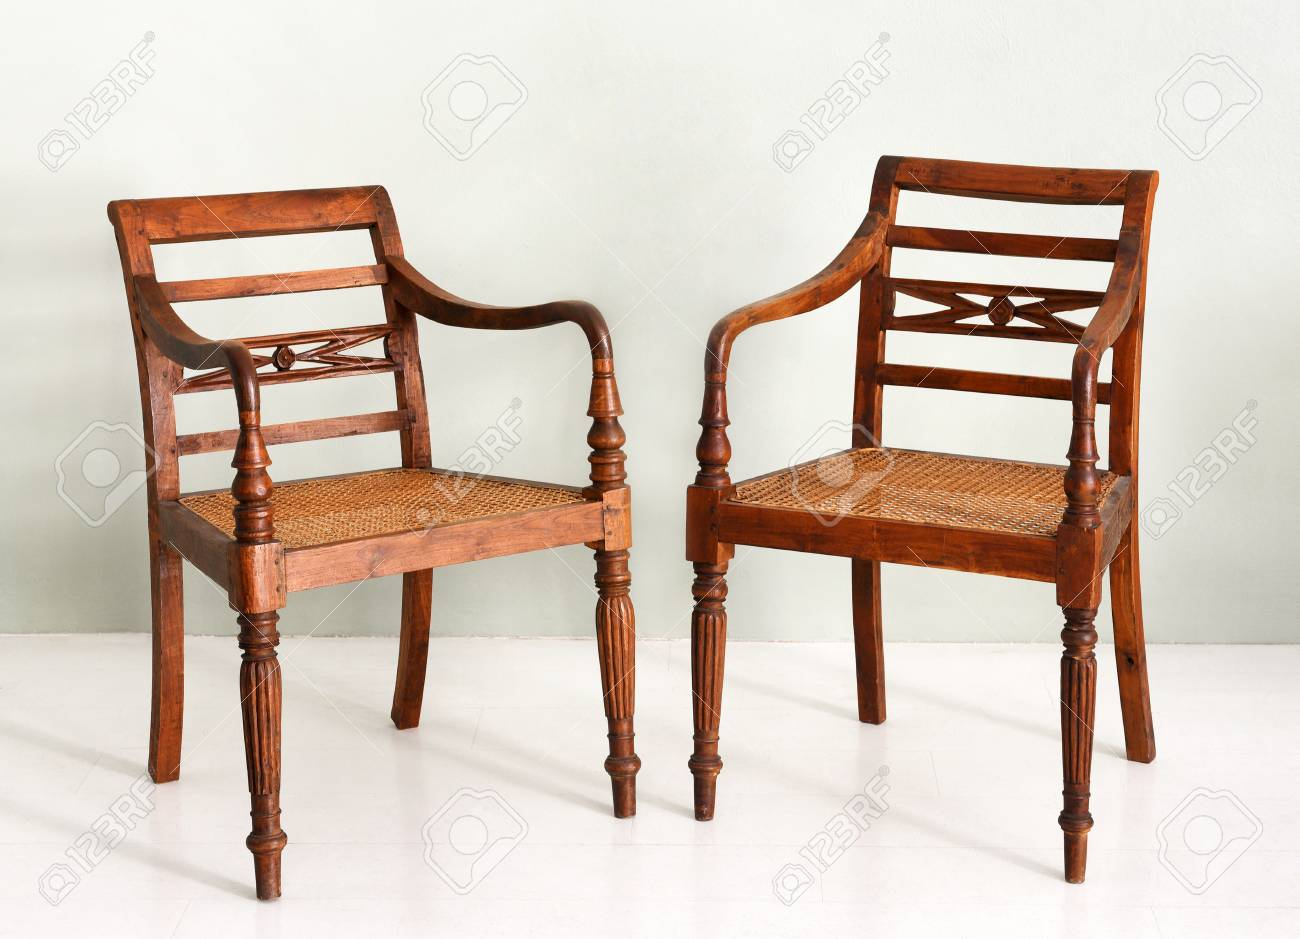 Stock Photo   Two Vintage Colonial Style Wooden Armchairs With Spindle Form  Legs And Wicker Or Cane Seats, Possibly Servers From A Dining Set